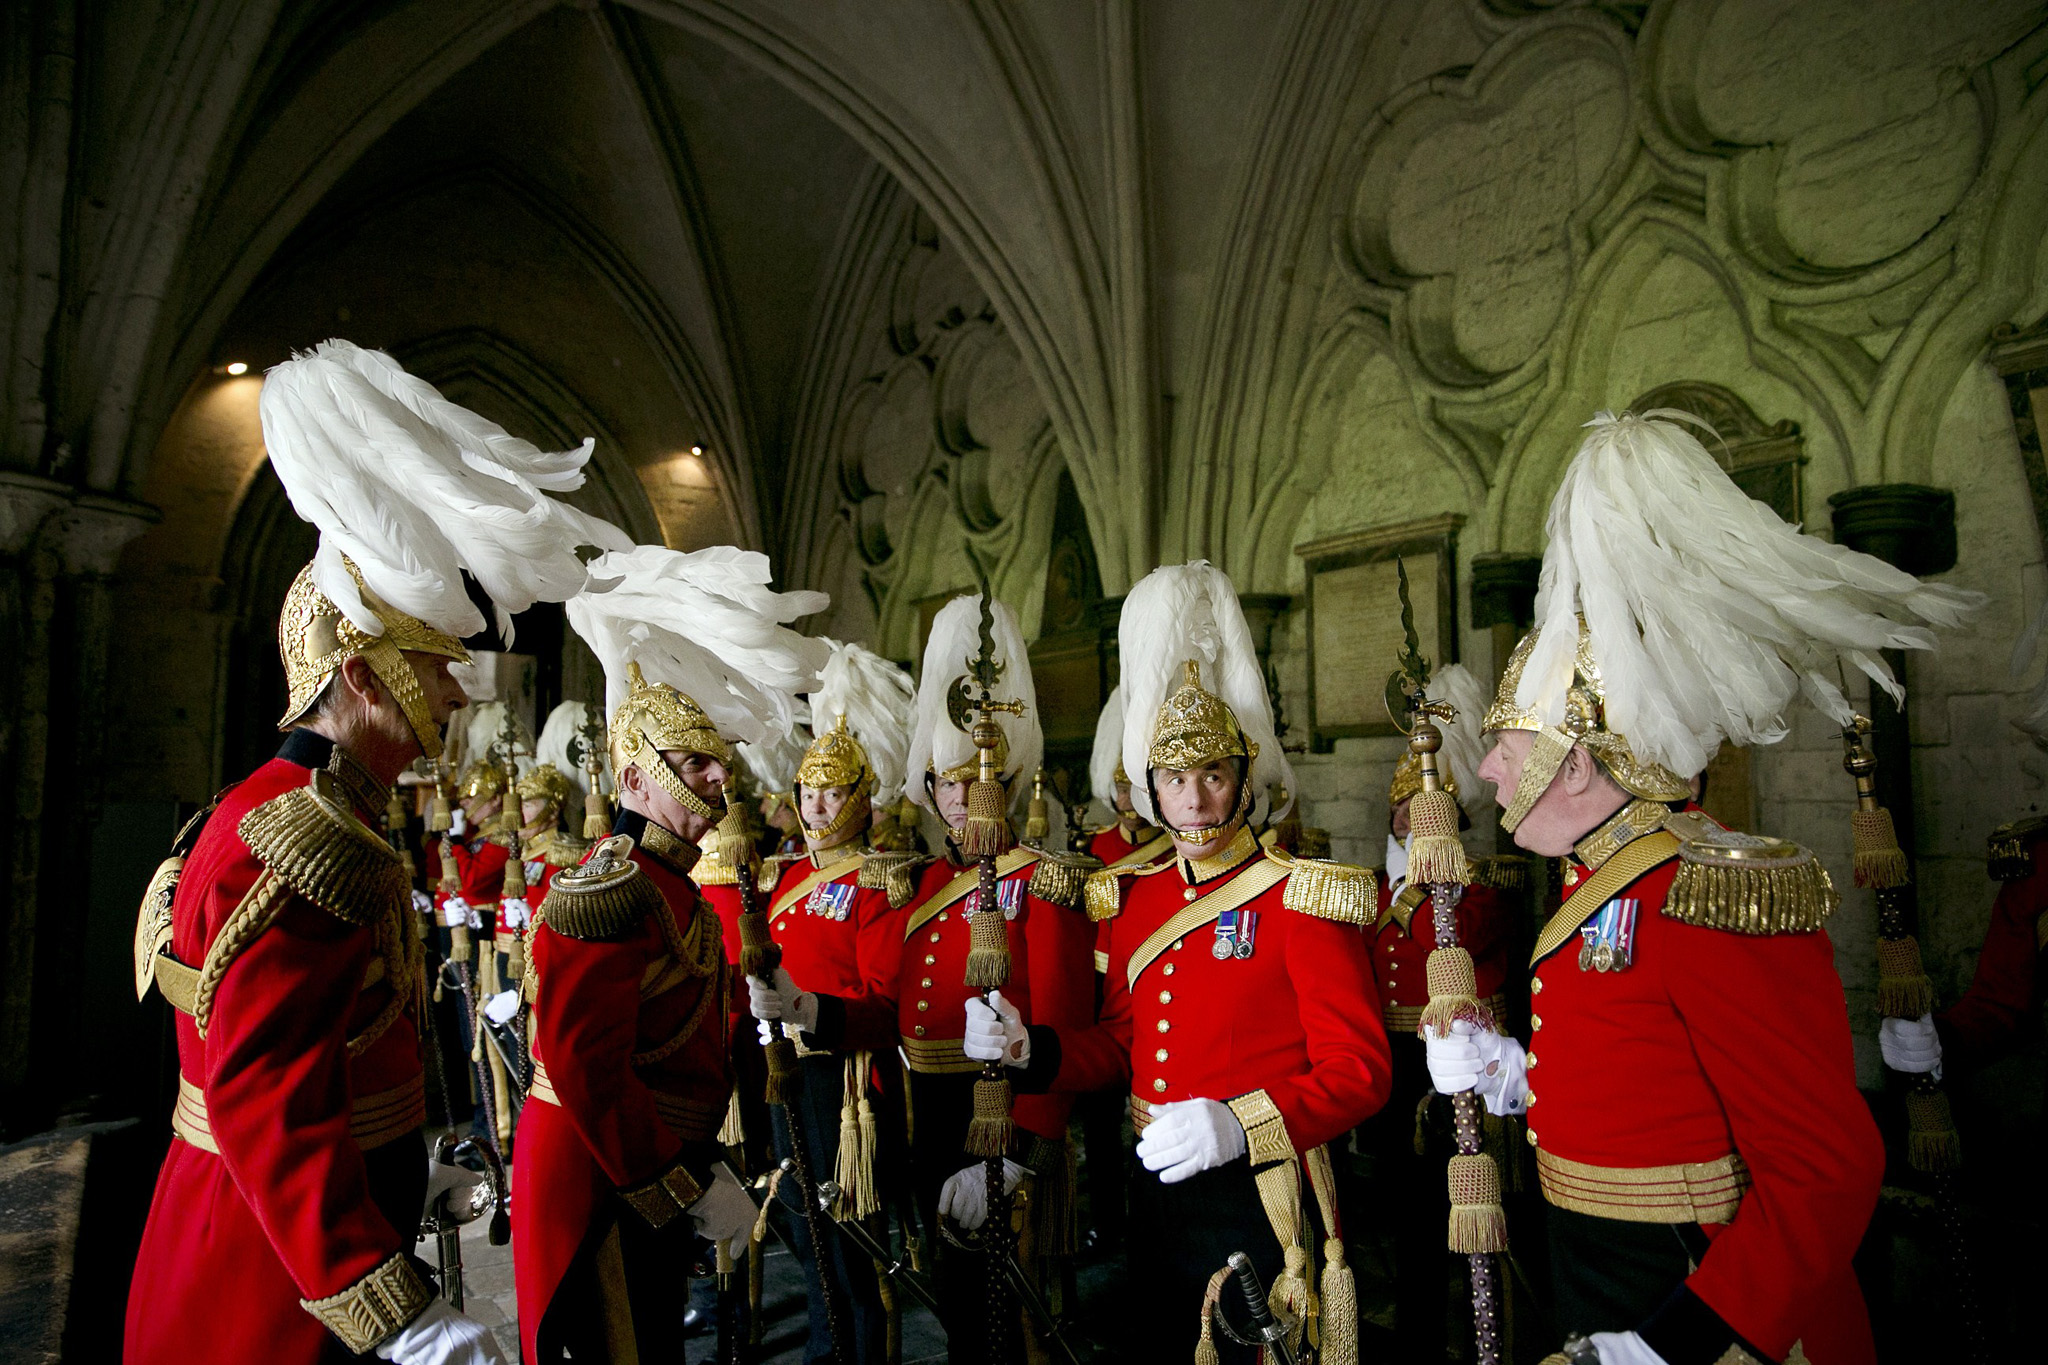 Her Majesty's Body Guard of the Honourab...Her Majesty's Body Guard of the Honourable Corps of Gentlemen muster in the Abbey cloisters ahead of the arrival of Britain's Queen Elizabeth II to attend the Order of the Bath Service at Westminster Abbey  in London on May 9, 2014. The service, held every four years, is always attended by Prince Charles but he is joined every eighth year by the Queen, who was last present in May 2006. The Queen is Sovereign Head of the military order while Charles is its Great Master. It originated in the medieval period when the honour was only conferred on a knight after he had performed a number of rituals designed to purify the inner soul - fasting, vigils and prayer, and cleansing by bathing. George I revived it in 1725 as a regular military order, to serve the purposes of the then prime minister, Sir Robert Walpole, who required an additional source for political reward. The Order dates back to 1725 and uses Henry VII's Chapel in Westminster Abbey as its Chapel. The Queen is Sovereign Head of the Order of the Bath and Prince Charles is its Great Master. AFP PHOTO / ADRIAN DENNIS WPA POOLADRIAN DENNIS/AFP/Getty Images